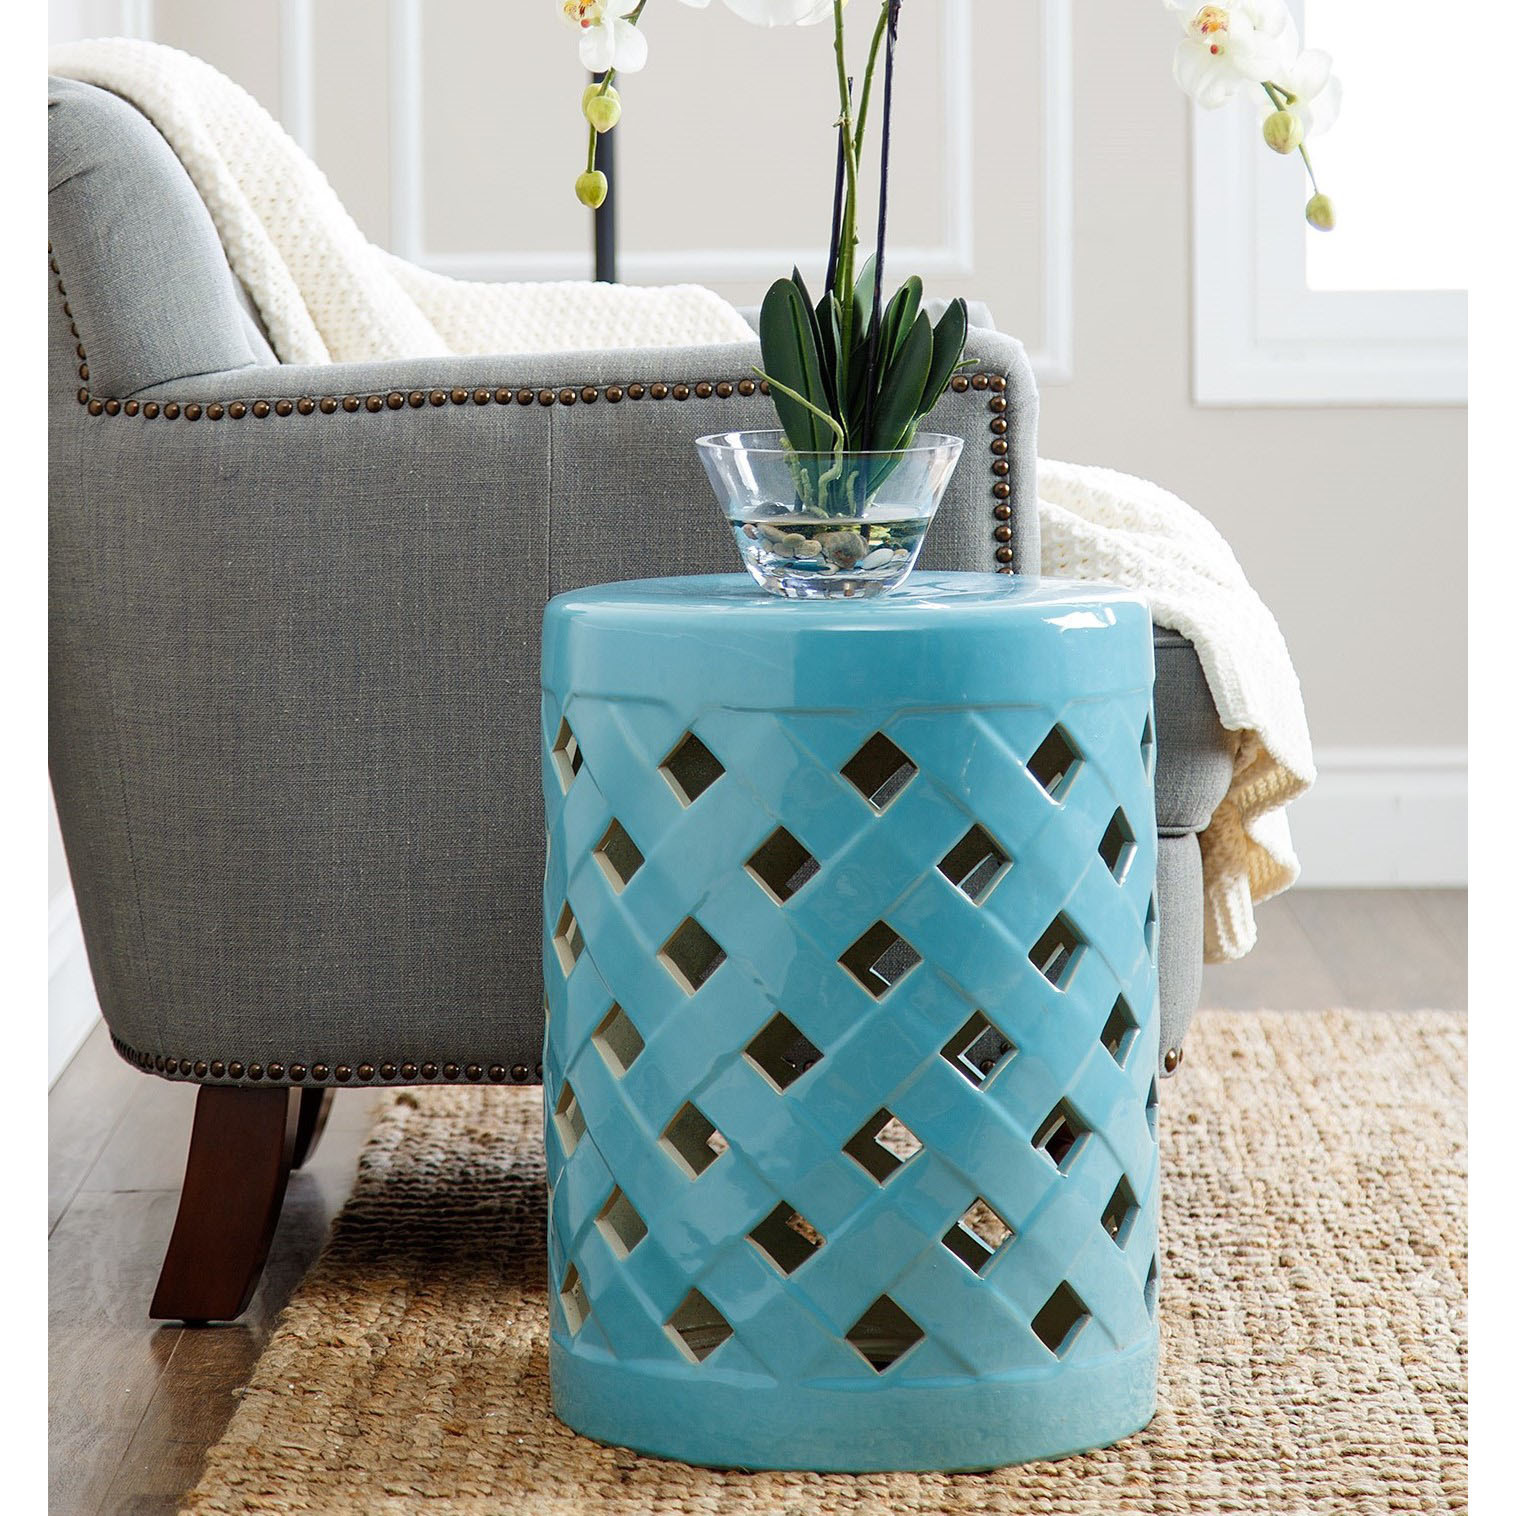 furniture interesting ceramic garden stool for outdoor unusual flower vases with blue and rug living room decoration ideas chinese drum side table metal cream pier one accent